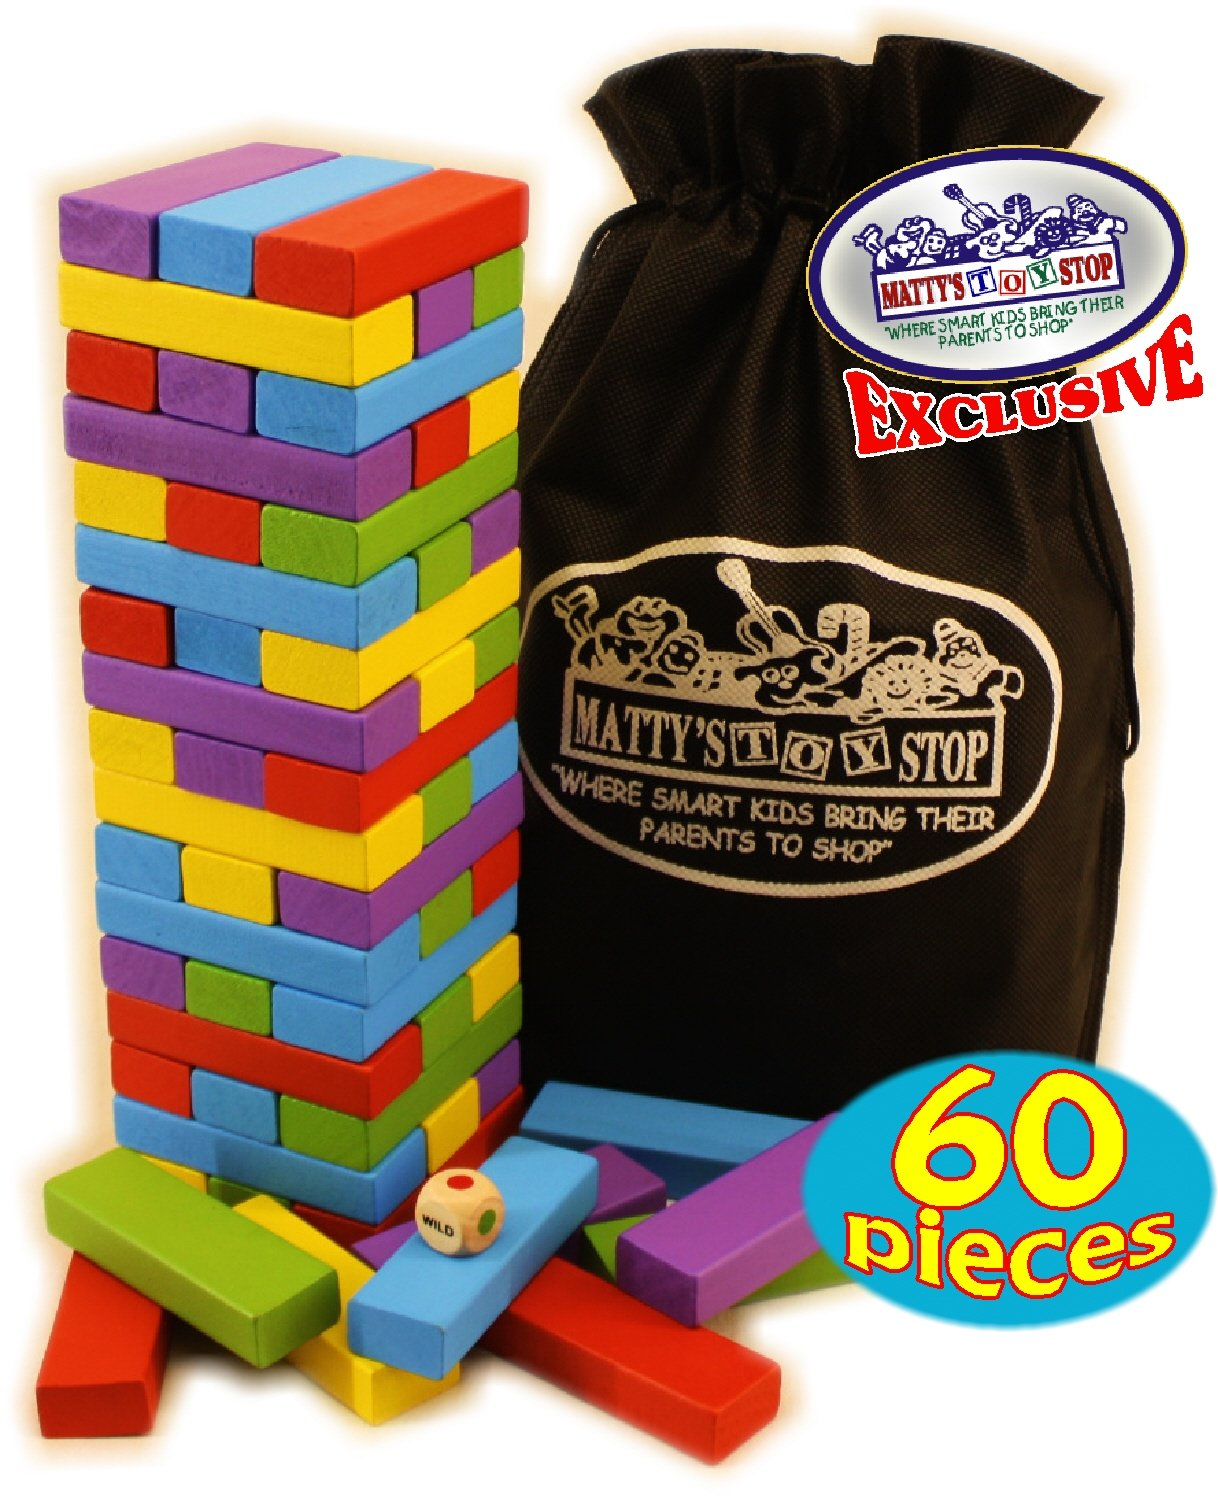 ''Matty's Mix-Up'' Colorful Wooden Deluxe Stacking Game Comes with 60 Color Wood Blocks, 1 Dice & Storage Bag!